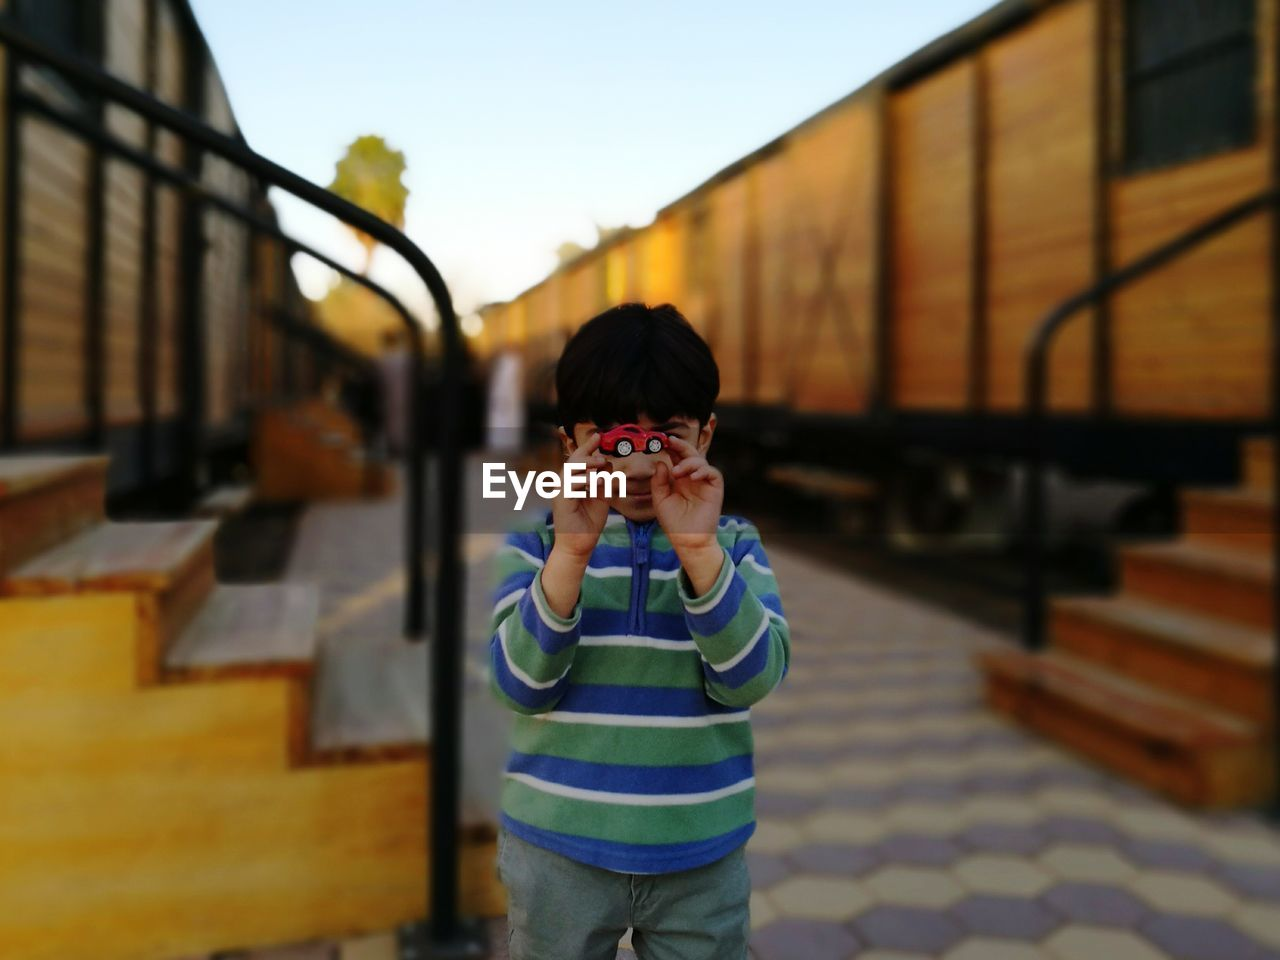 Boy Holding Toy Car Amidst Freight Trains